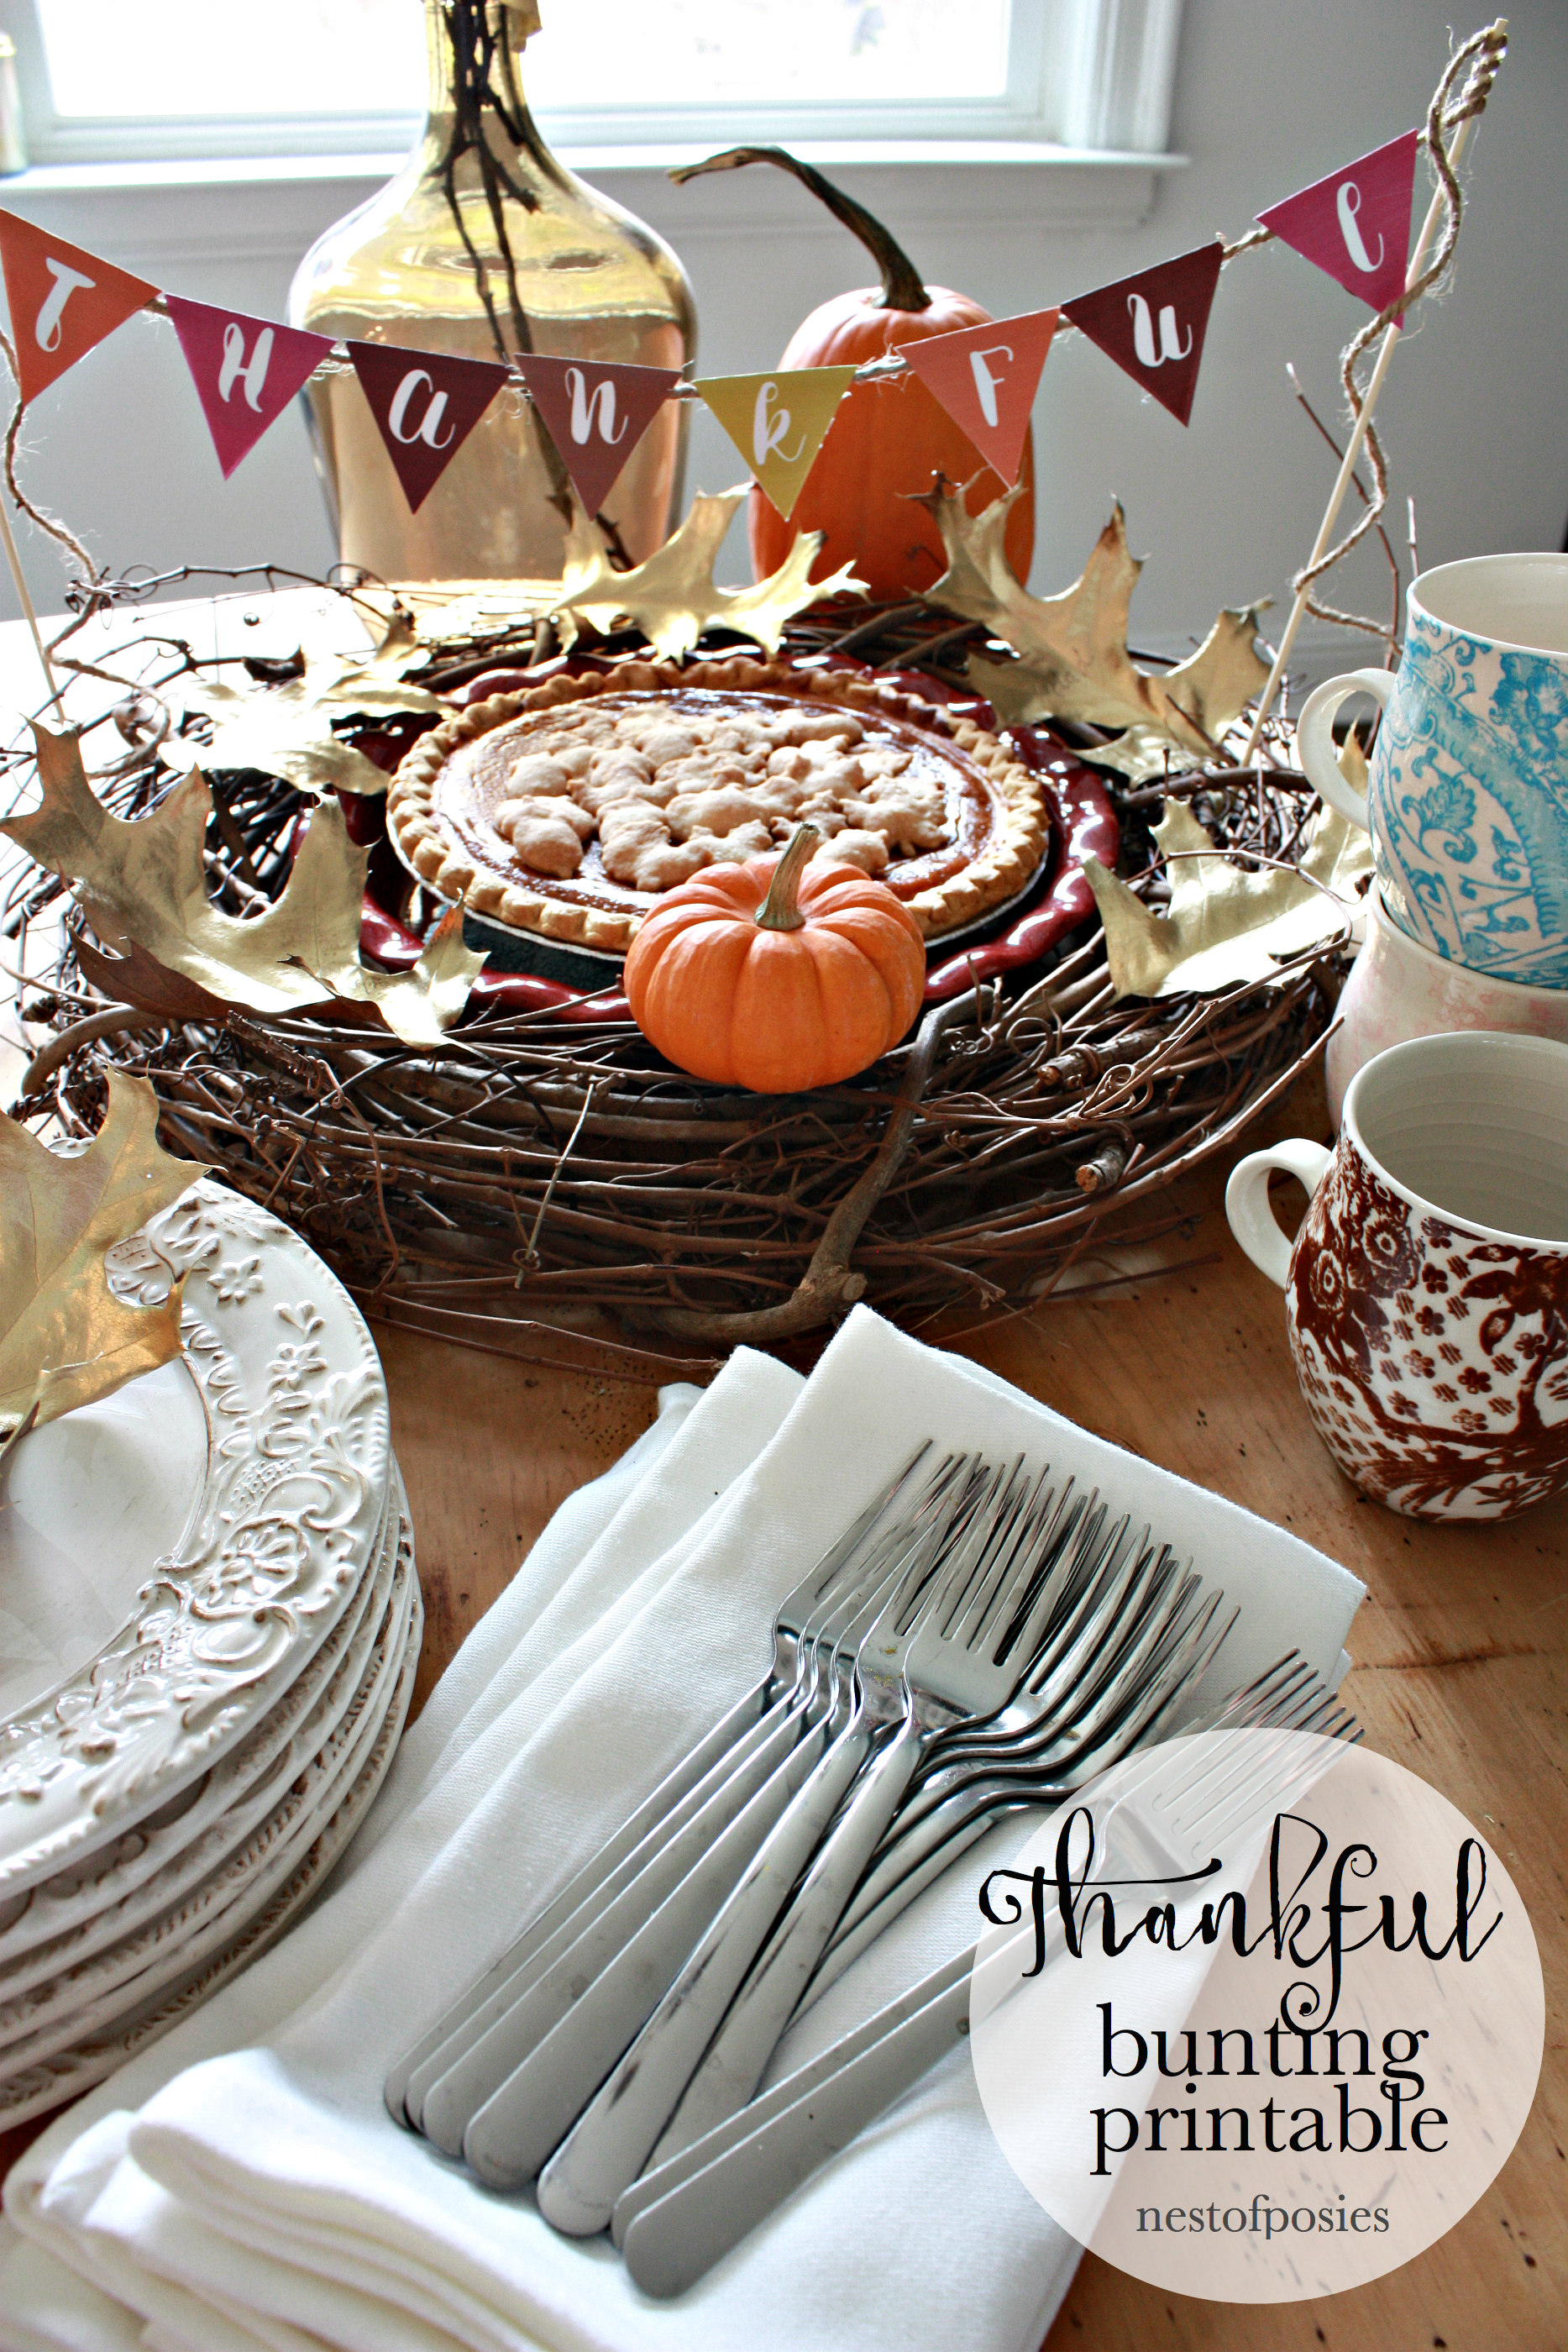 Thankful Bunting Printable to use on your Thanksgiving Table or Buffet.